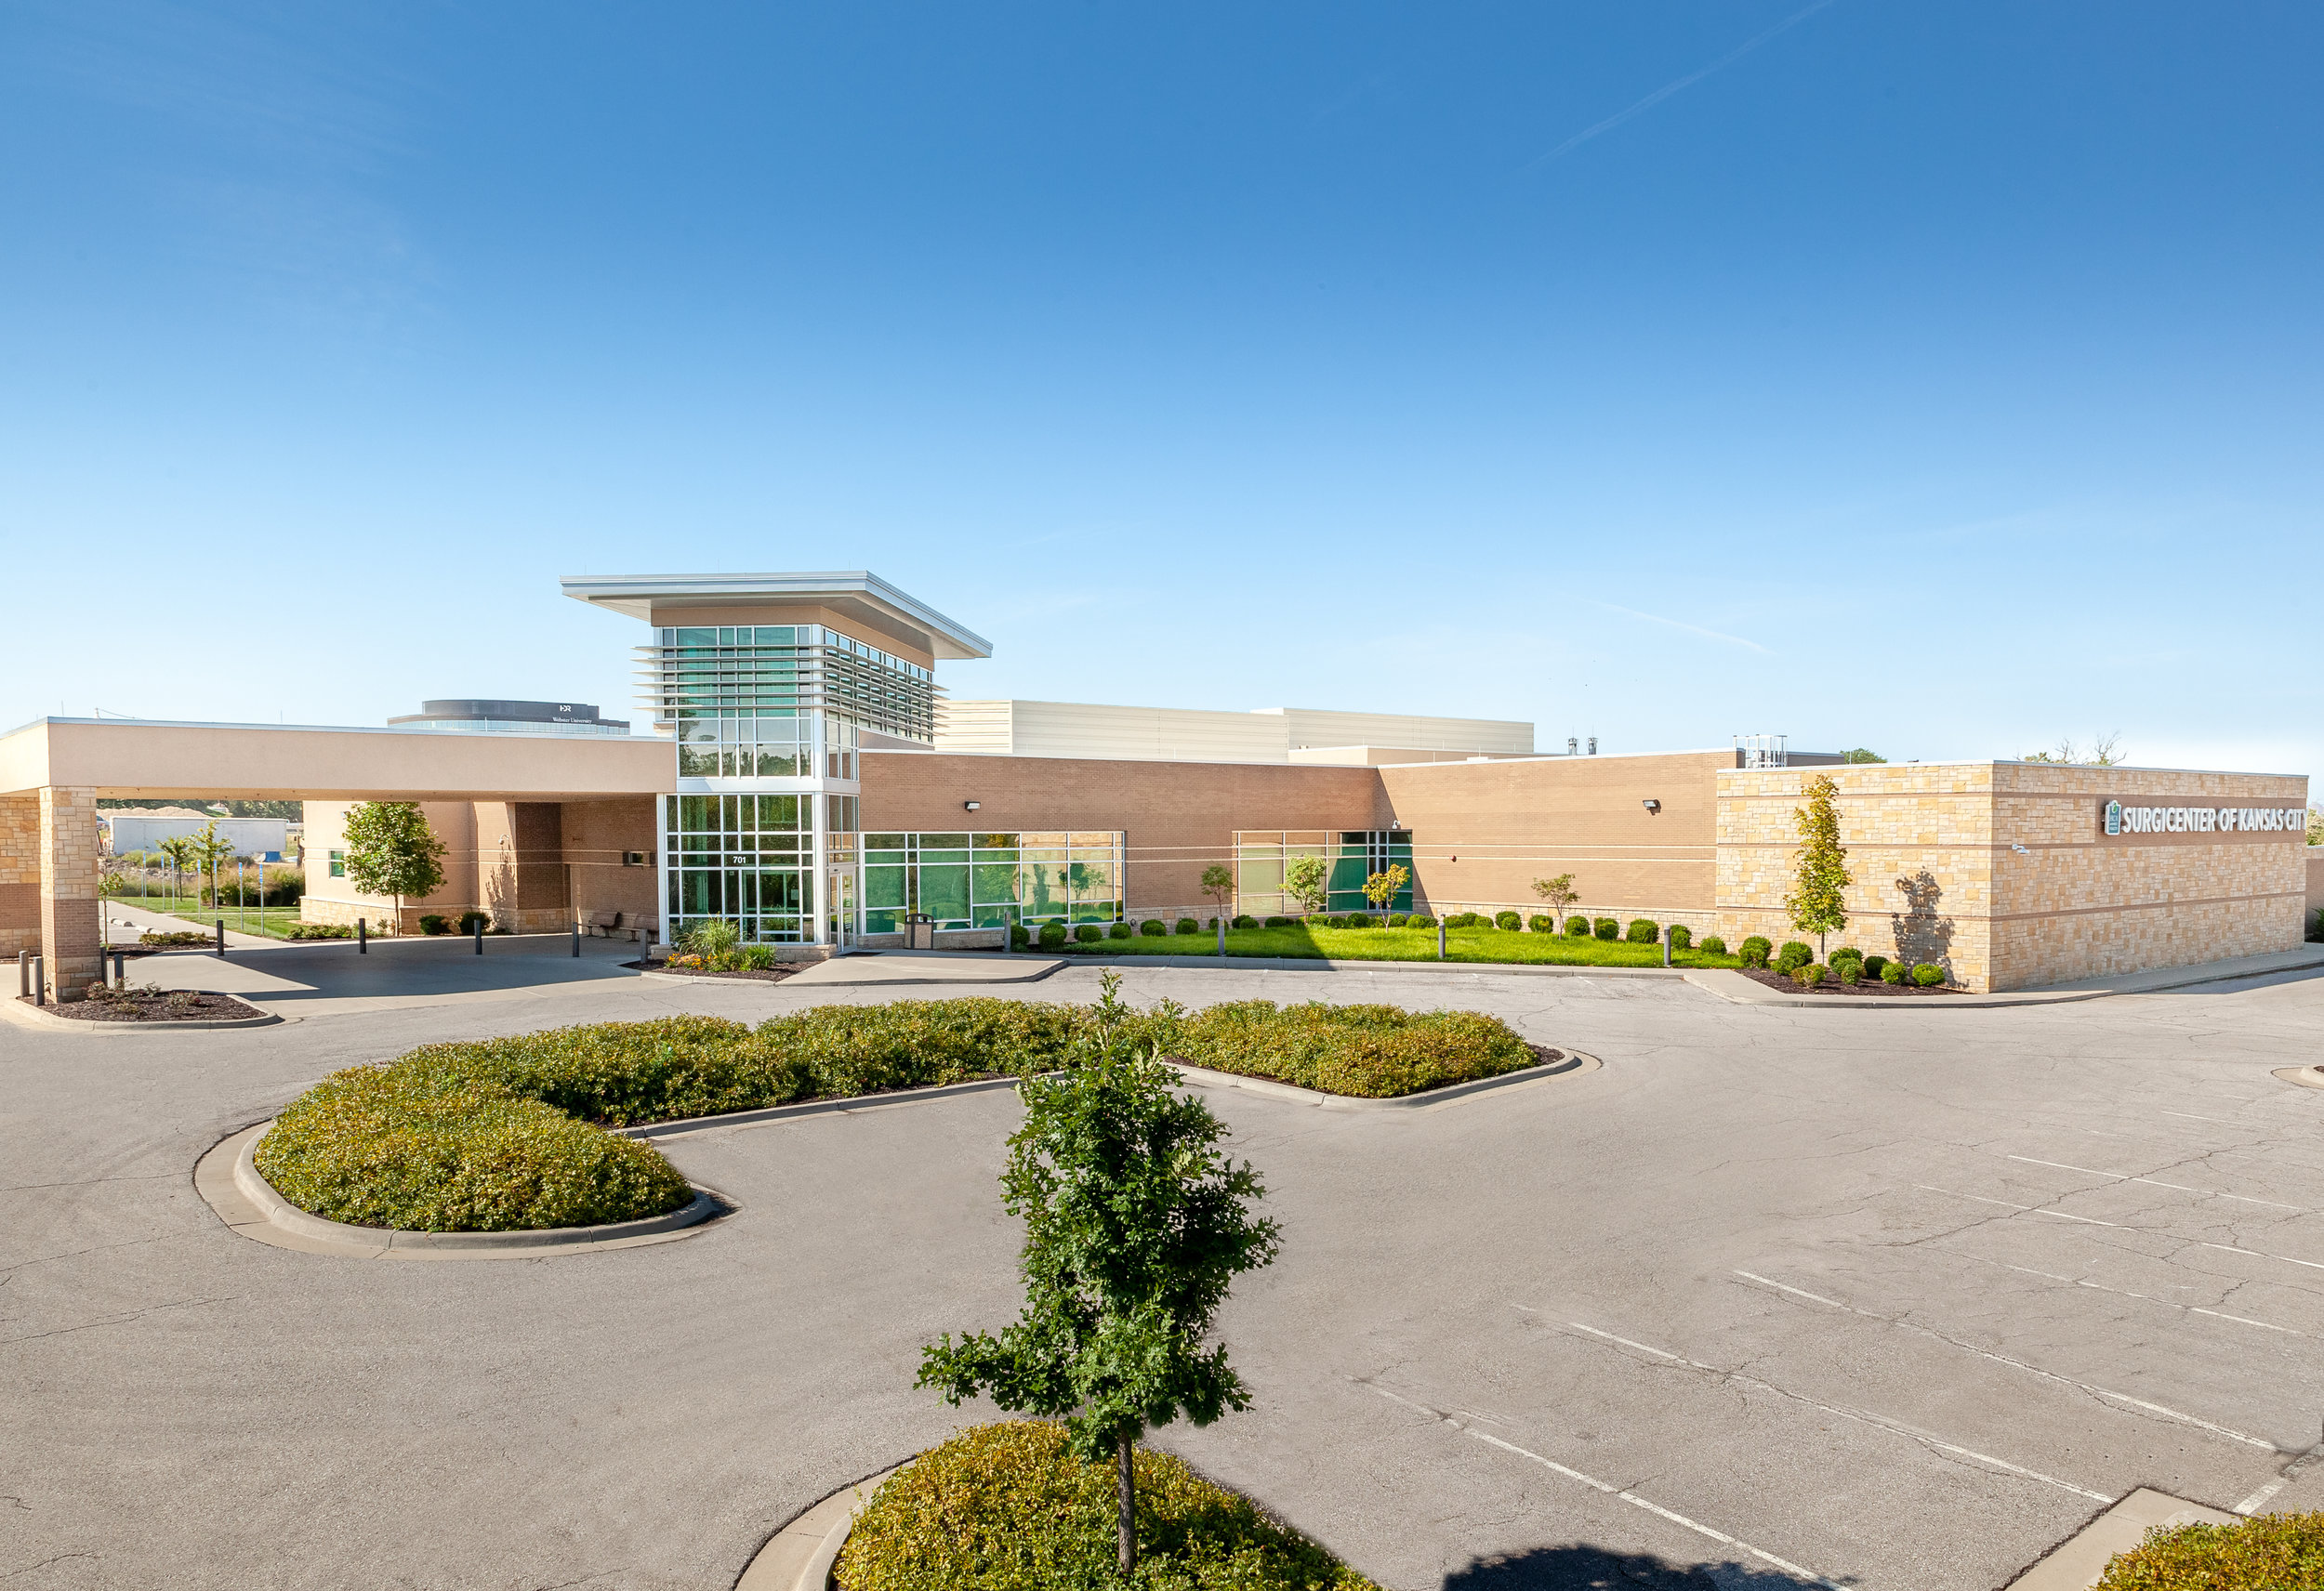 Surgicenter-of-Kansas-City-for-Hereford-Dooley-Architects-by-Jacia-Phillips-.jpg